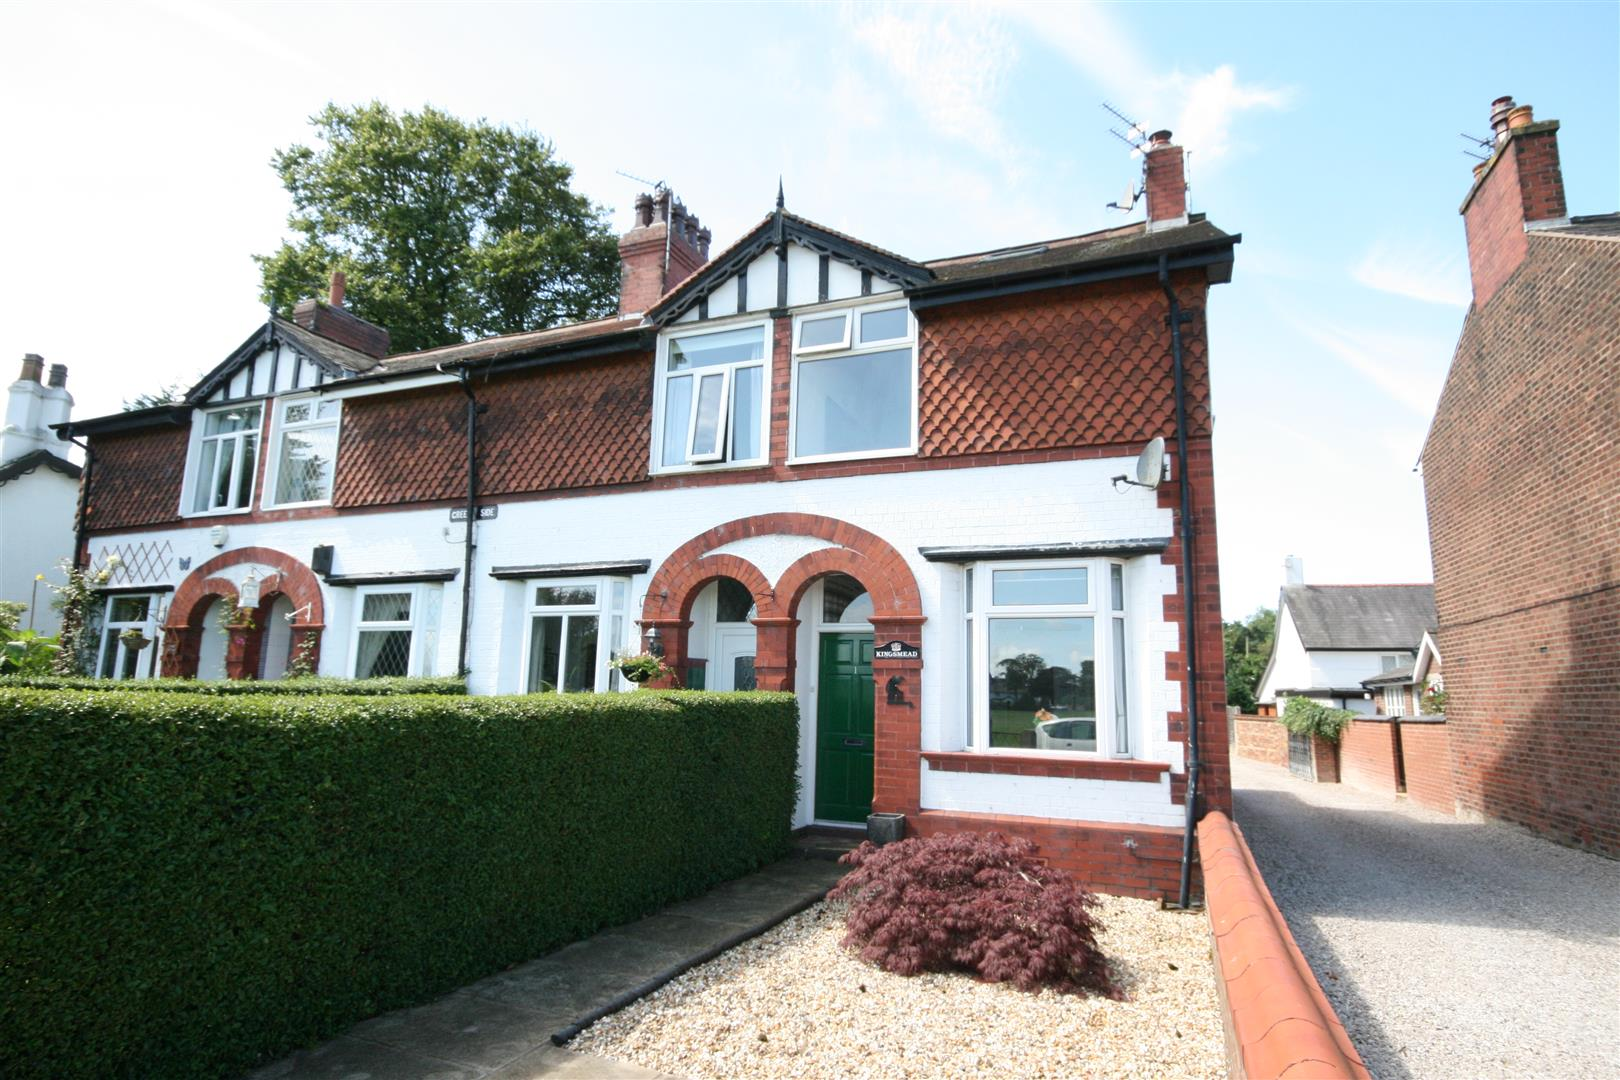 2 Bedrooms End Of Terrace House for sale in The Greenside, Wrea Green, Preston